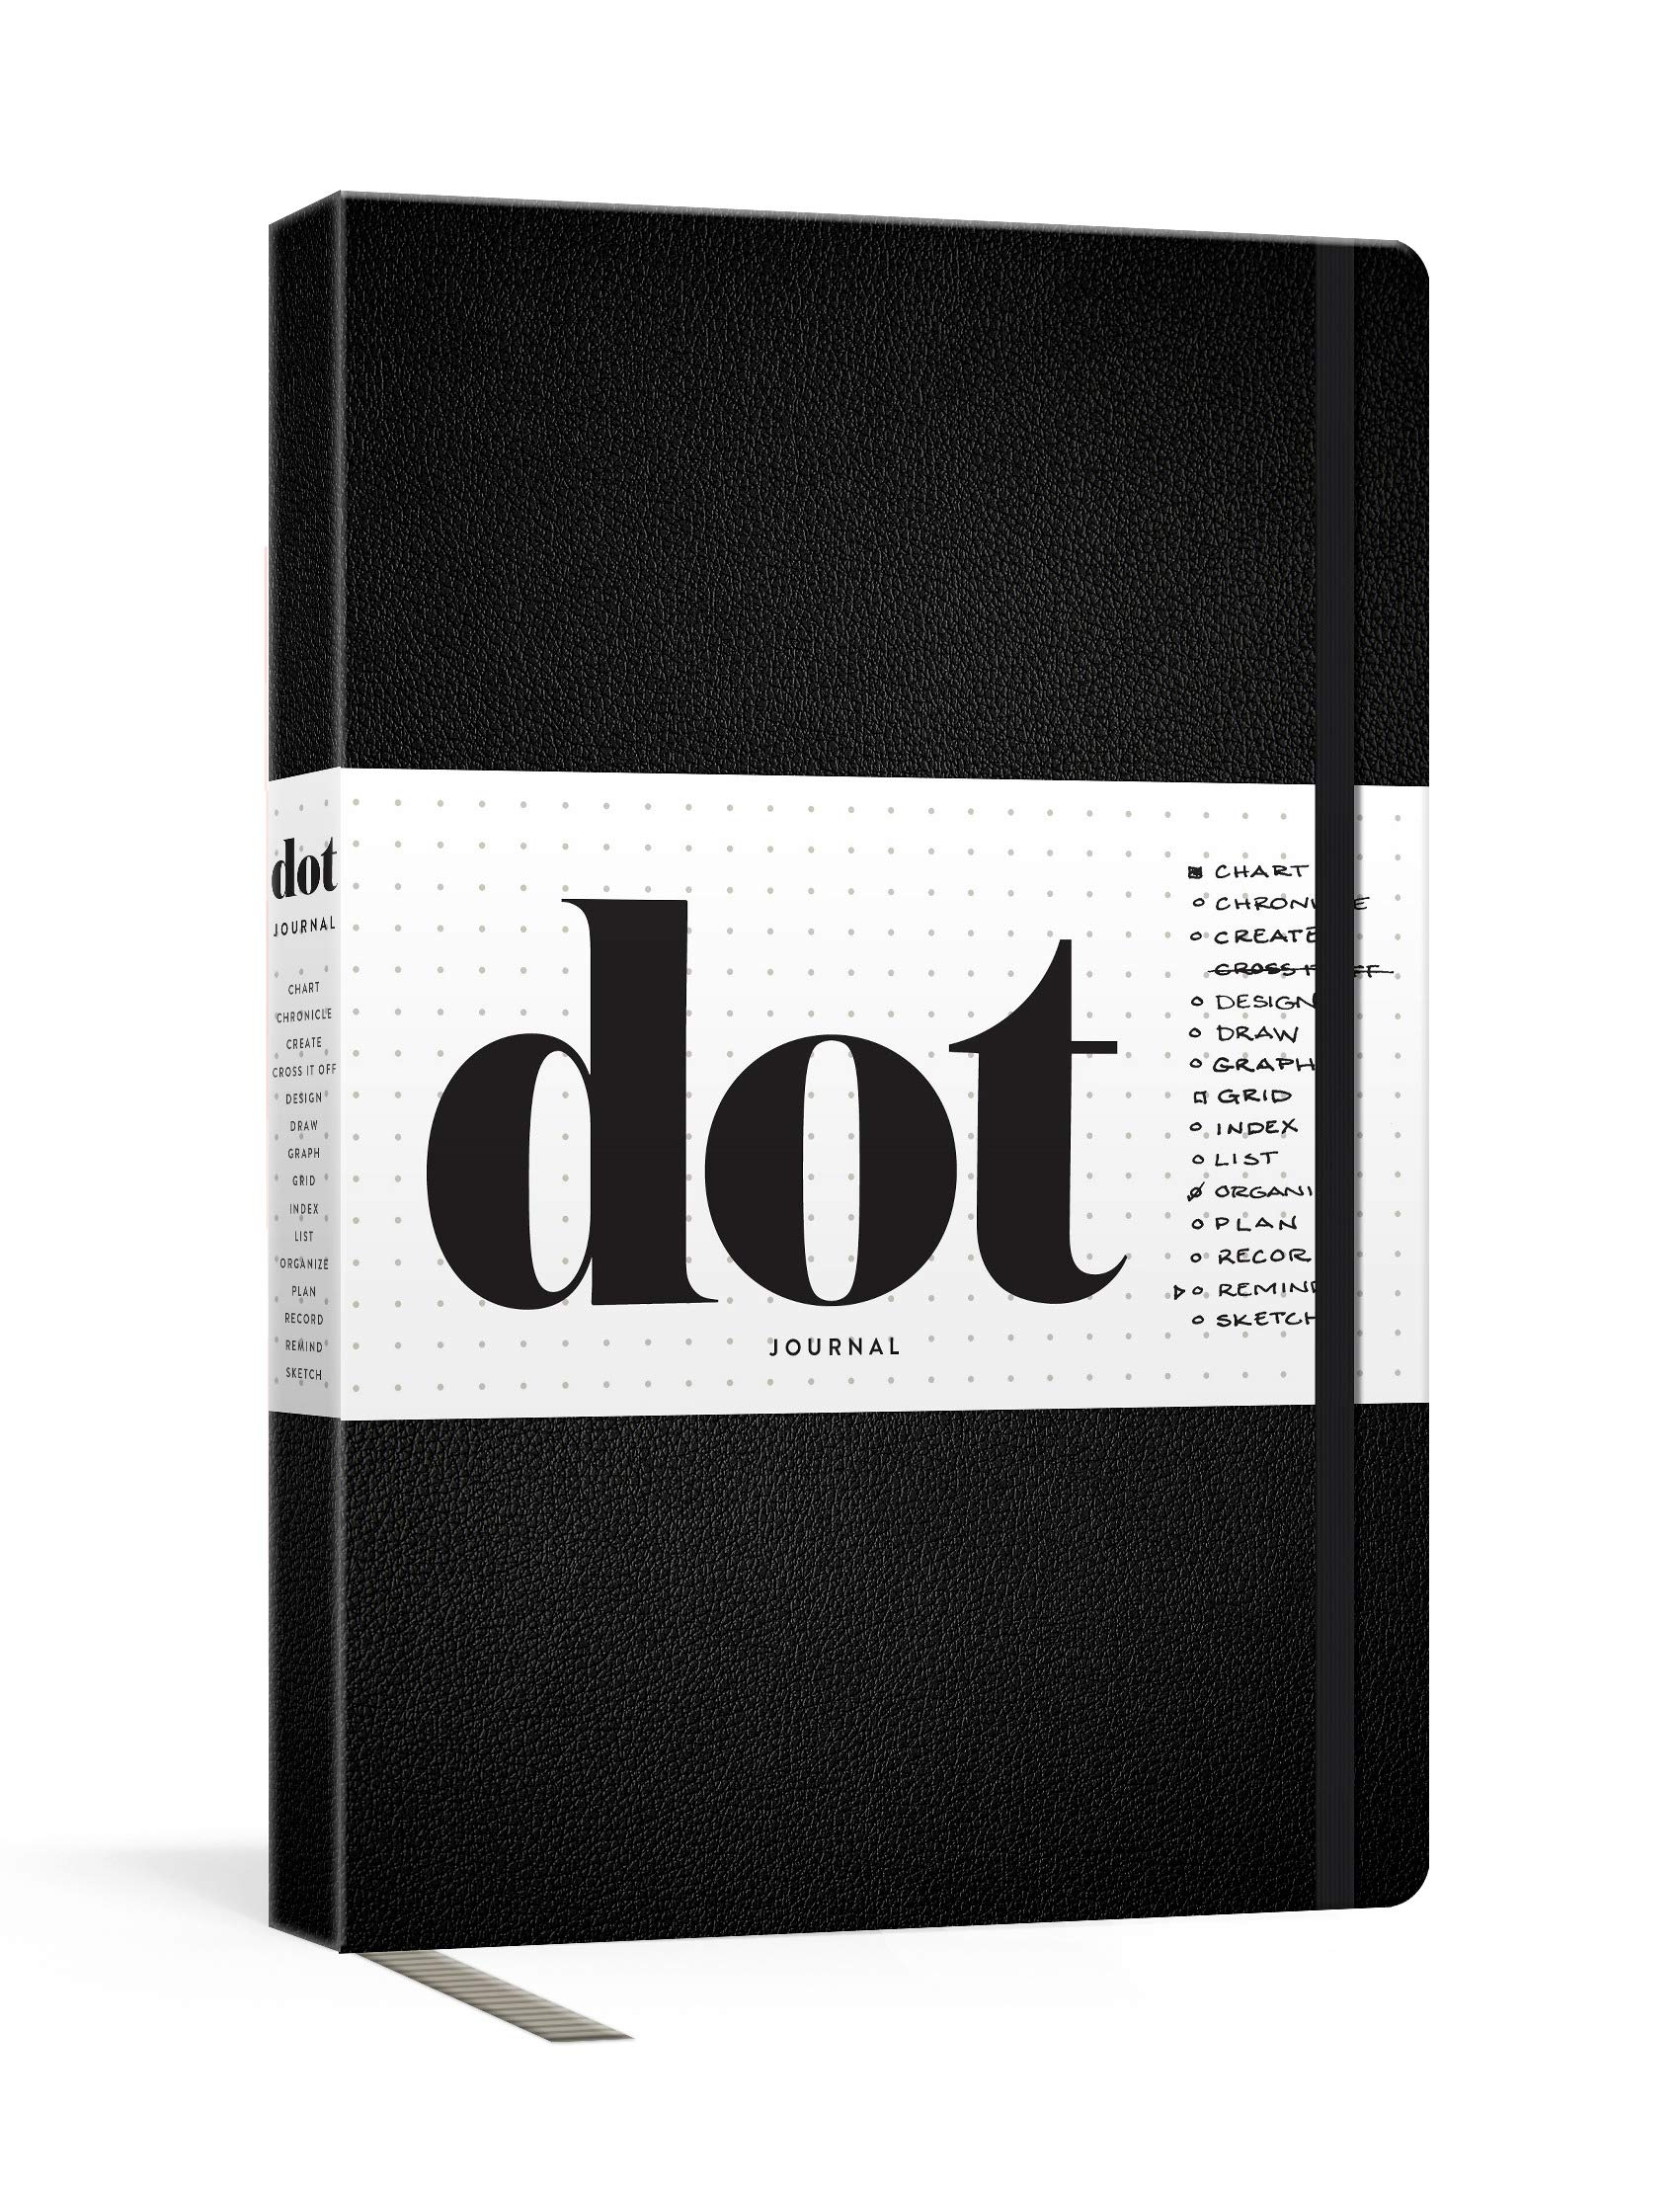 Image OfDot Journal (Black): A Dotted, Blank Journal For List-making, Journaling, Goal-setting: 256 Pages With Elastic Closure And...